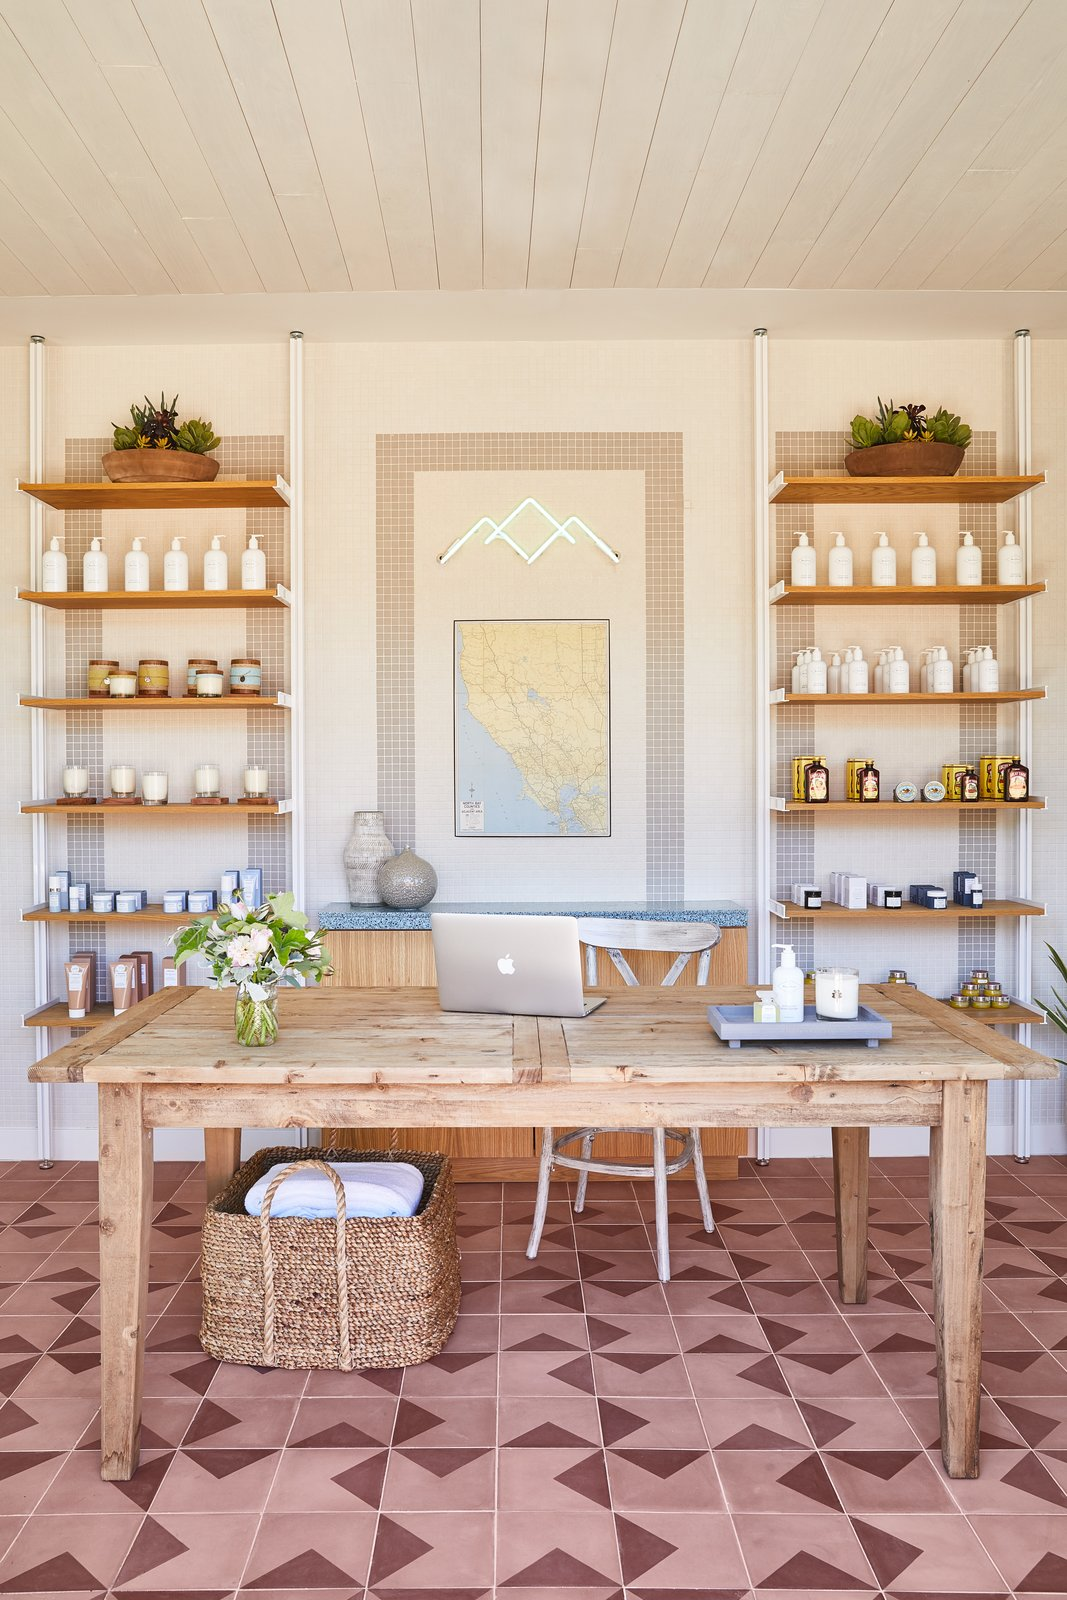 Office, Shelves, Desk, and Chair The spa, which has seven treatment rooms, draws from classic bathhouses and mineral baths and therapies found all over the world. The boutique area allows guests to take their favorite products home with them.  Best Photos